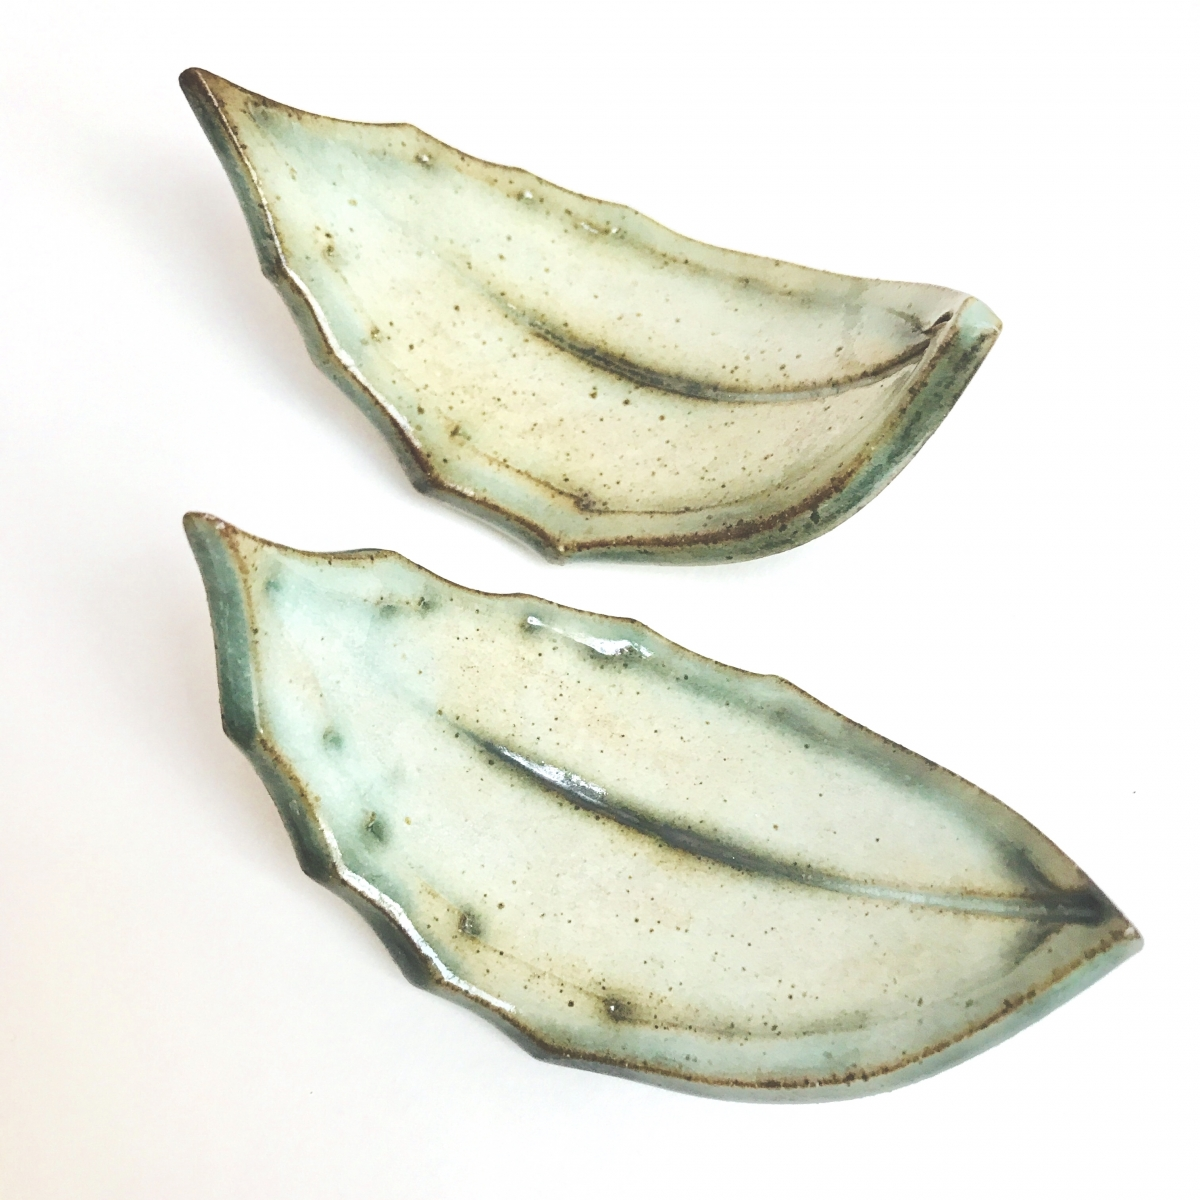 Leaf Chop Stick Rests by Sonya Ceramic Art